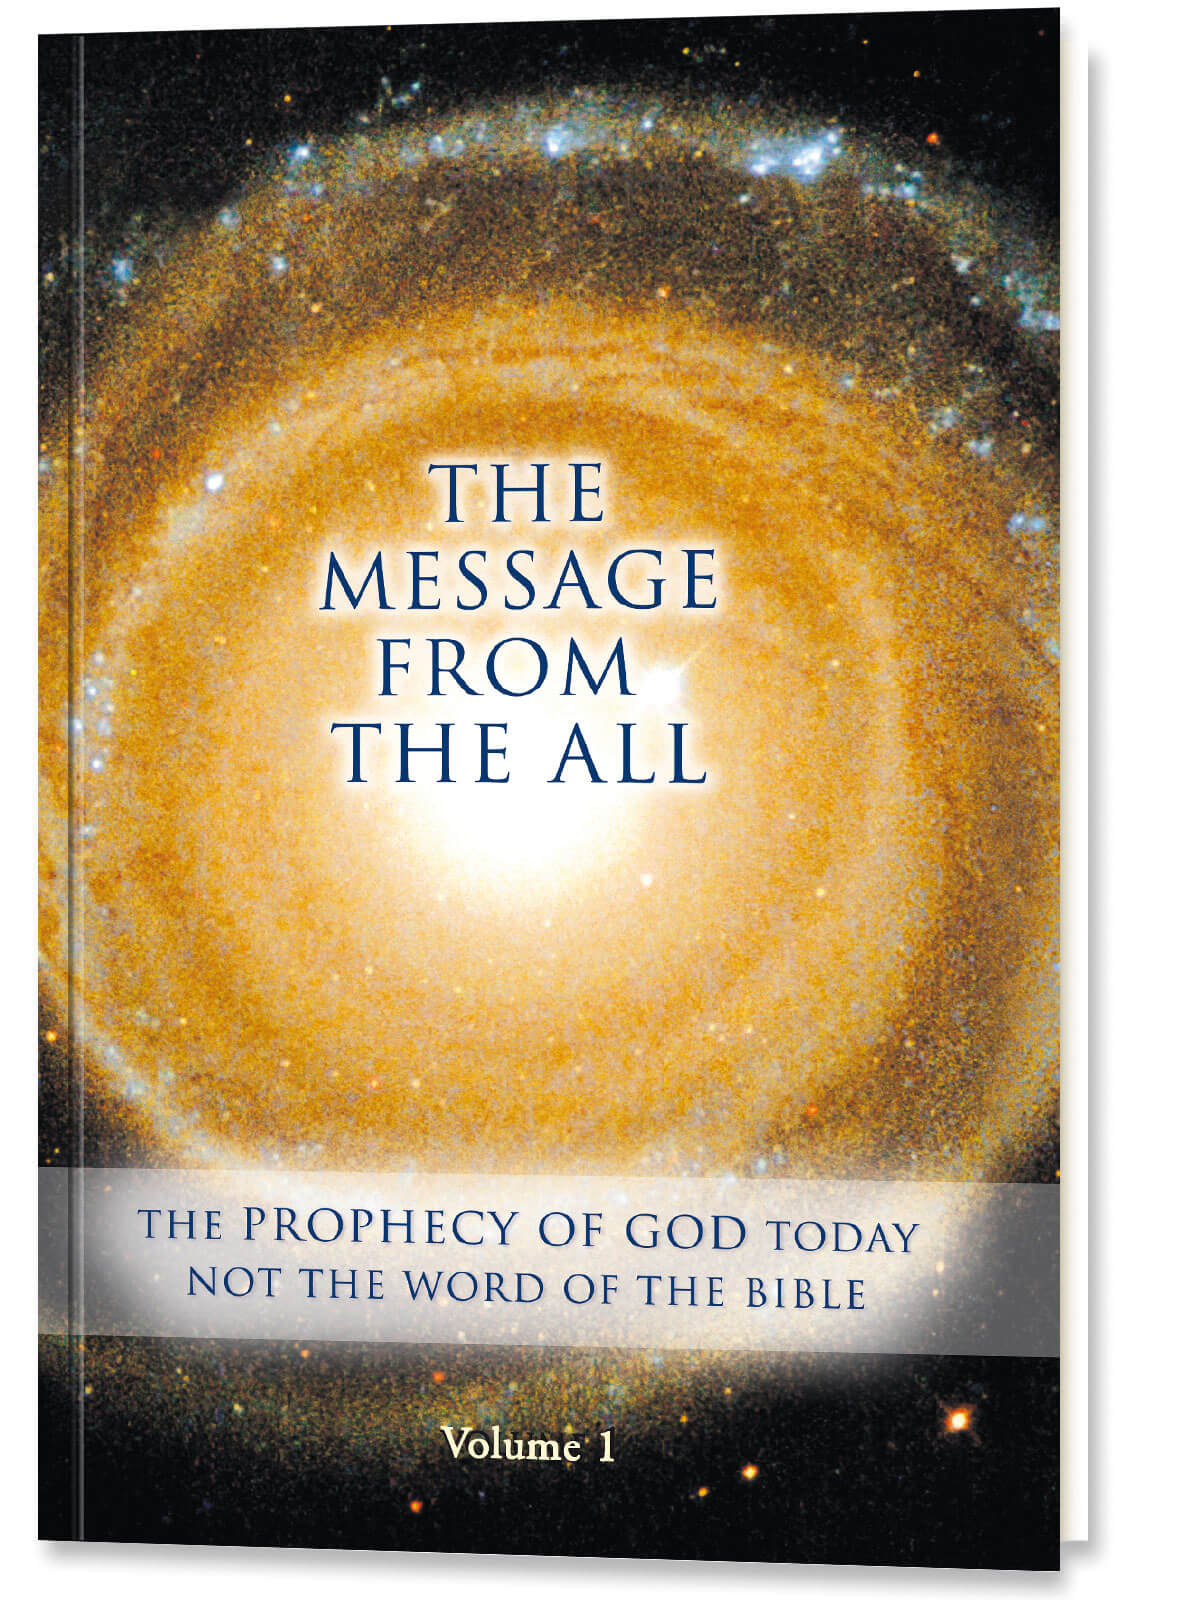 The Message from the All - Volume 1